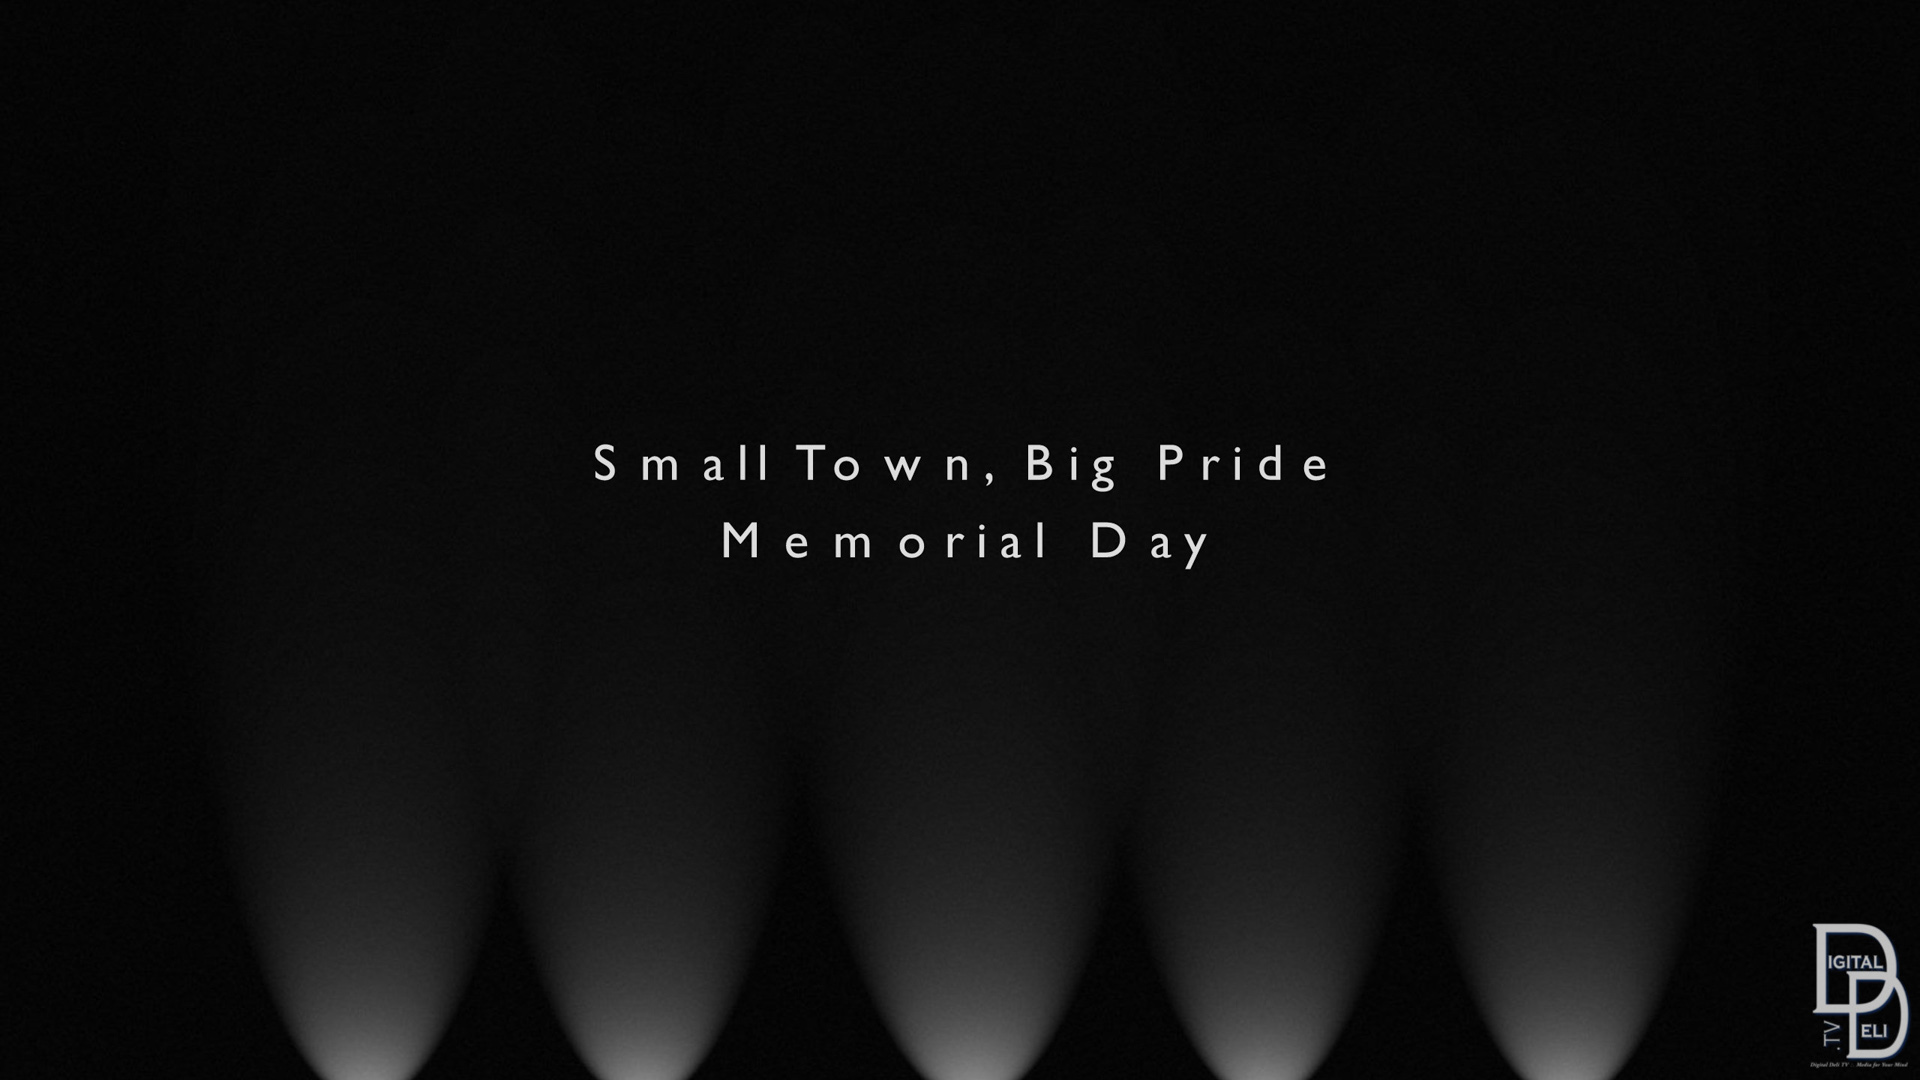 Small Town, Big Pride on Memorial Day